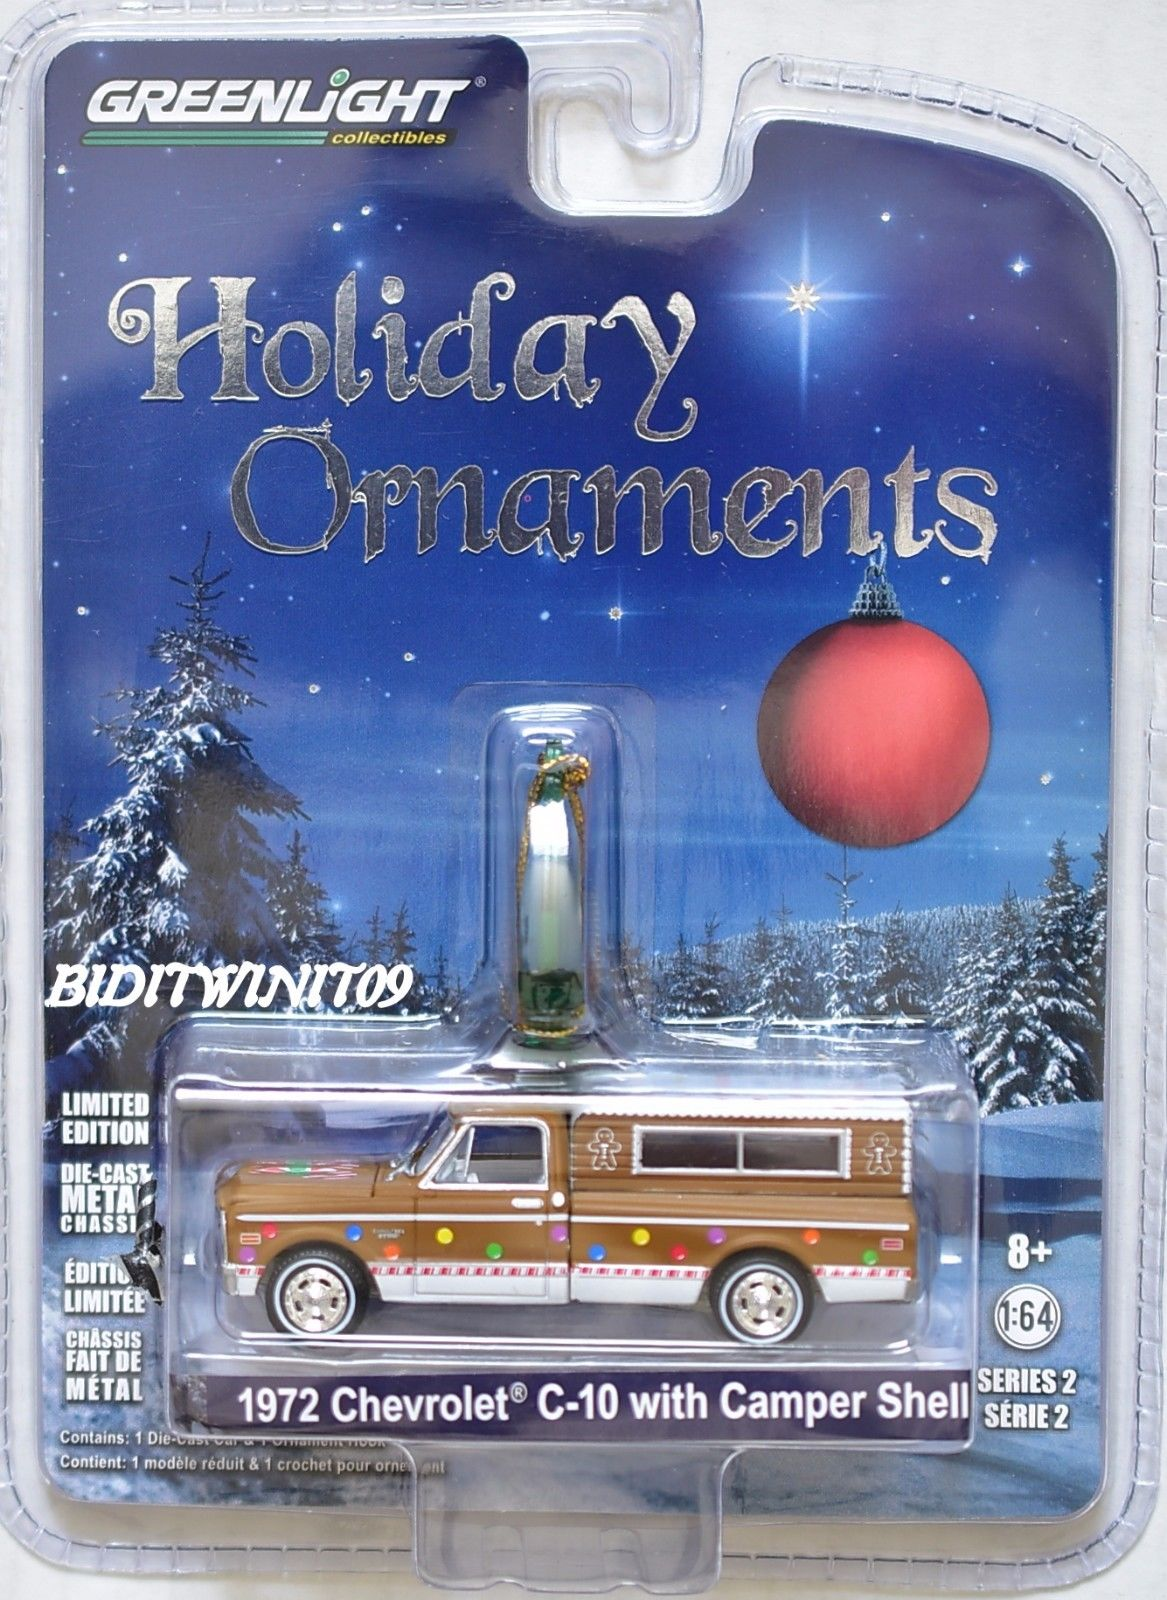 GREENLIGHT 2017 HOLIDAY ORNAMENTS 1972 CHEVROLET C-10 WITH CAMPER SHELL